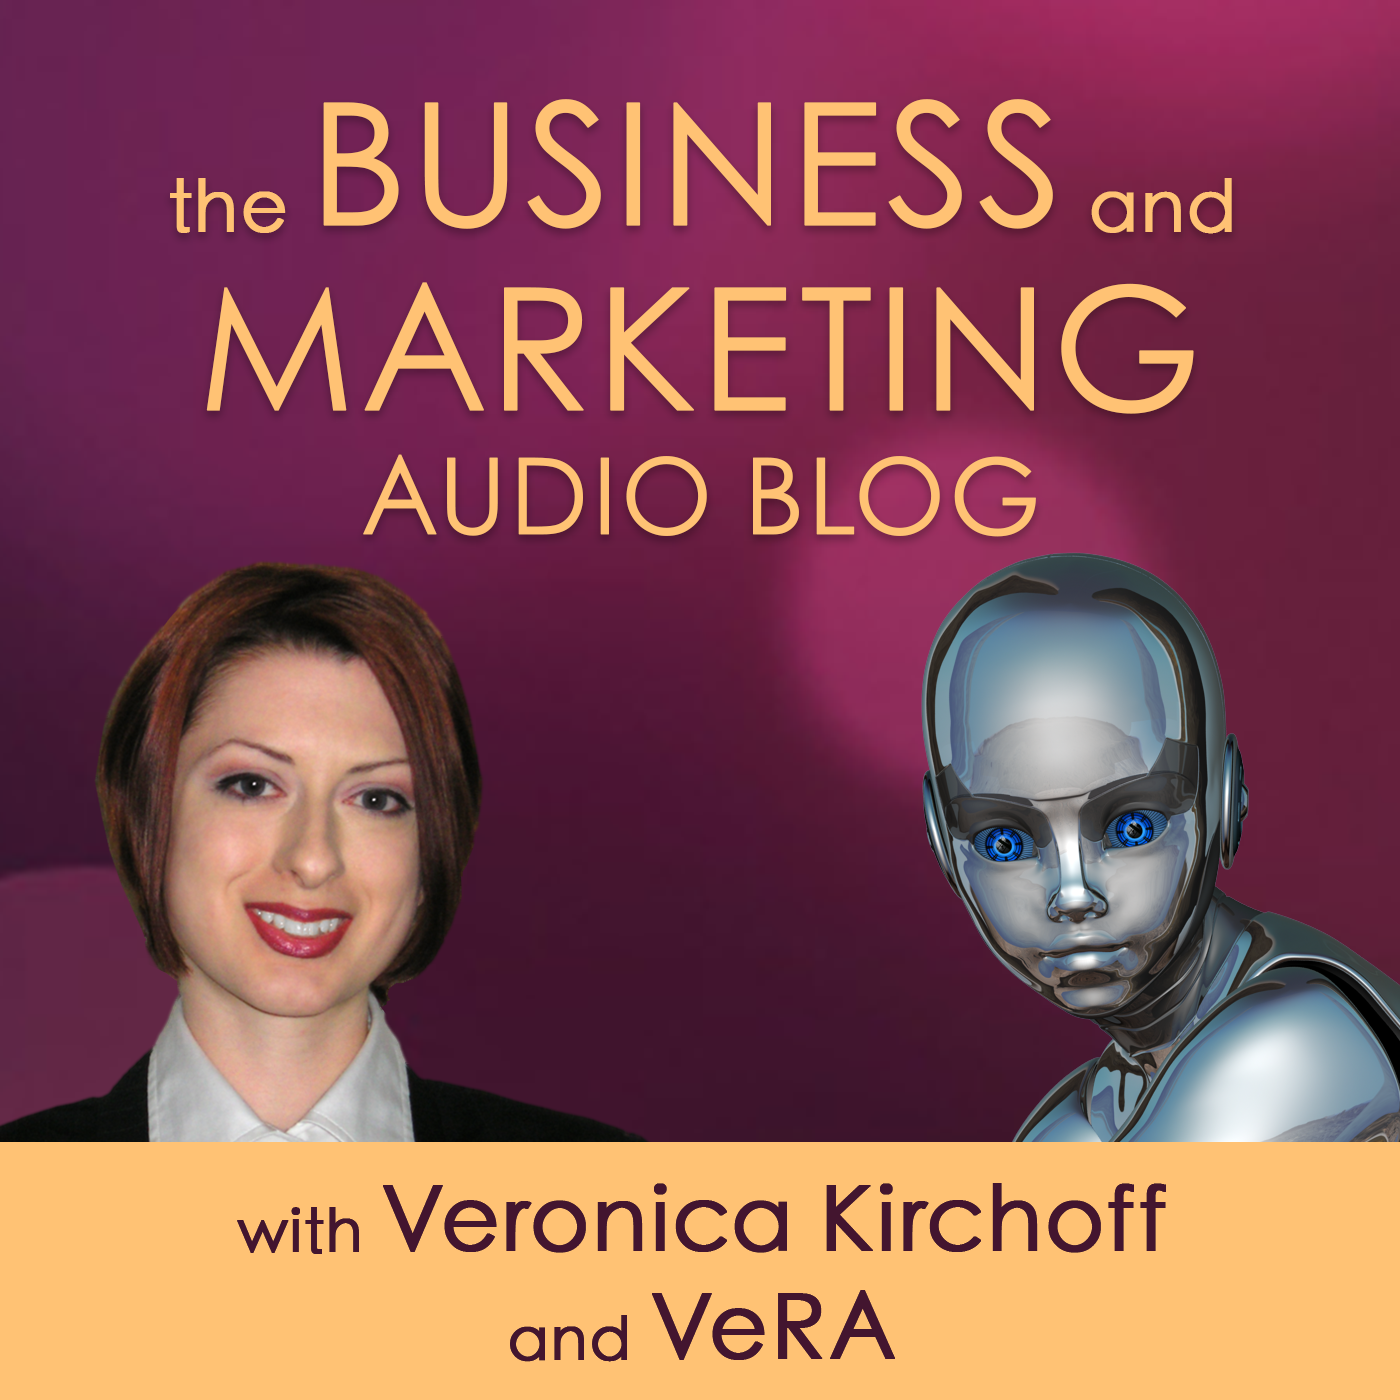 Business and Marketing Audio Blog